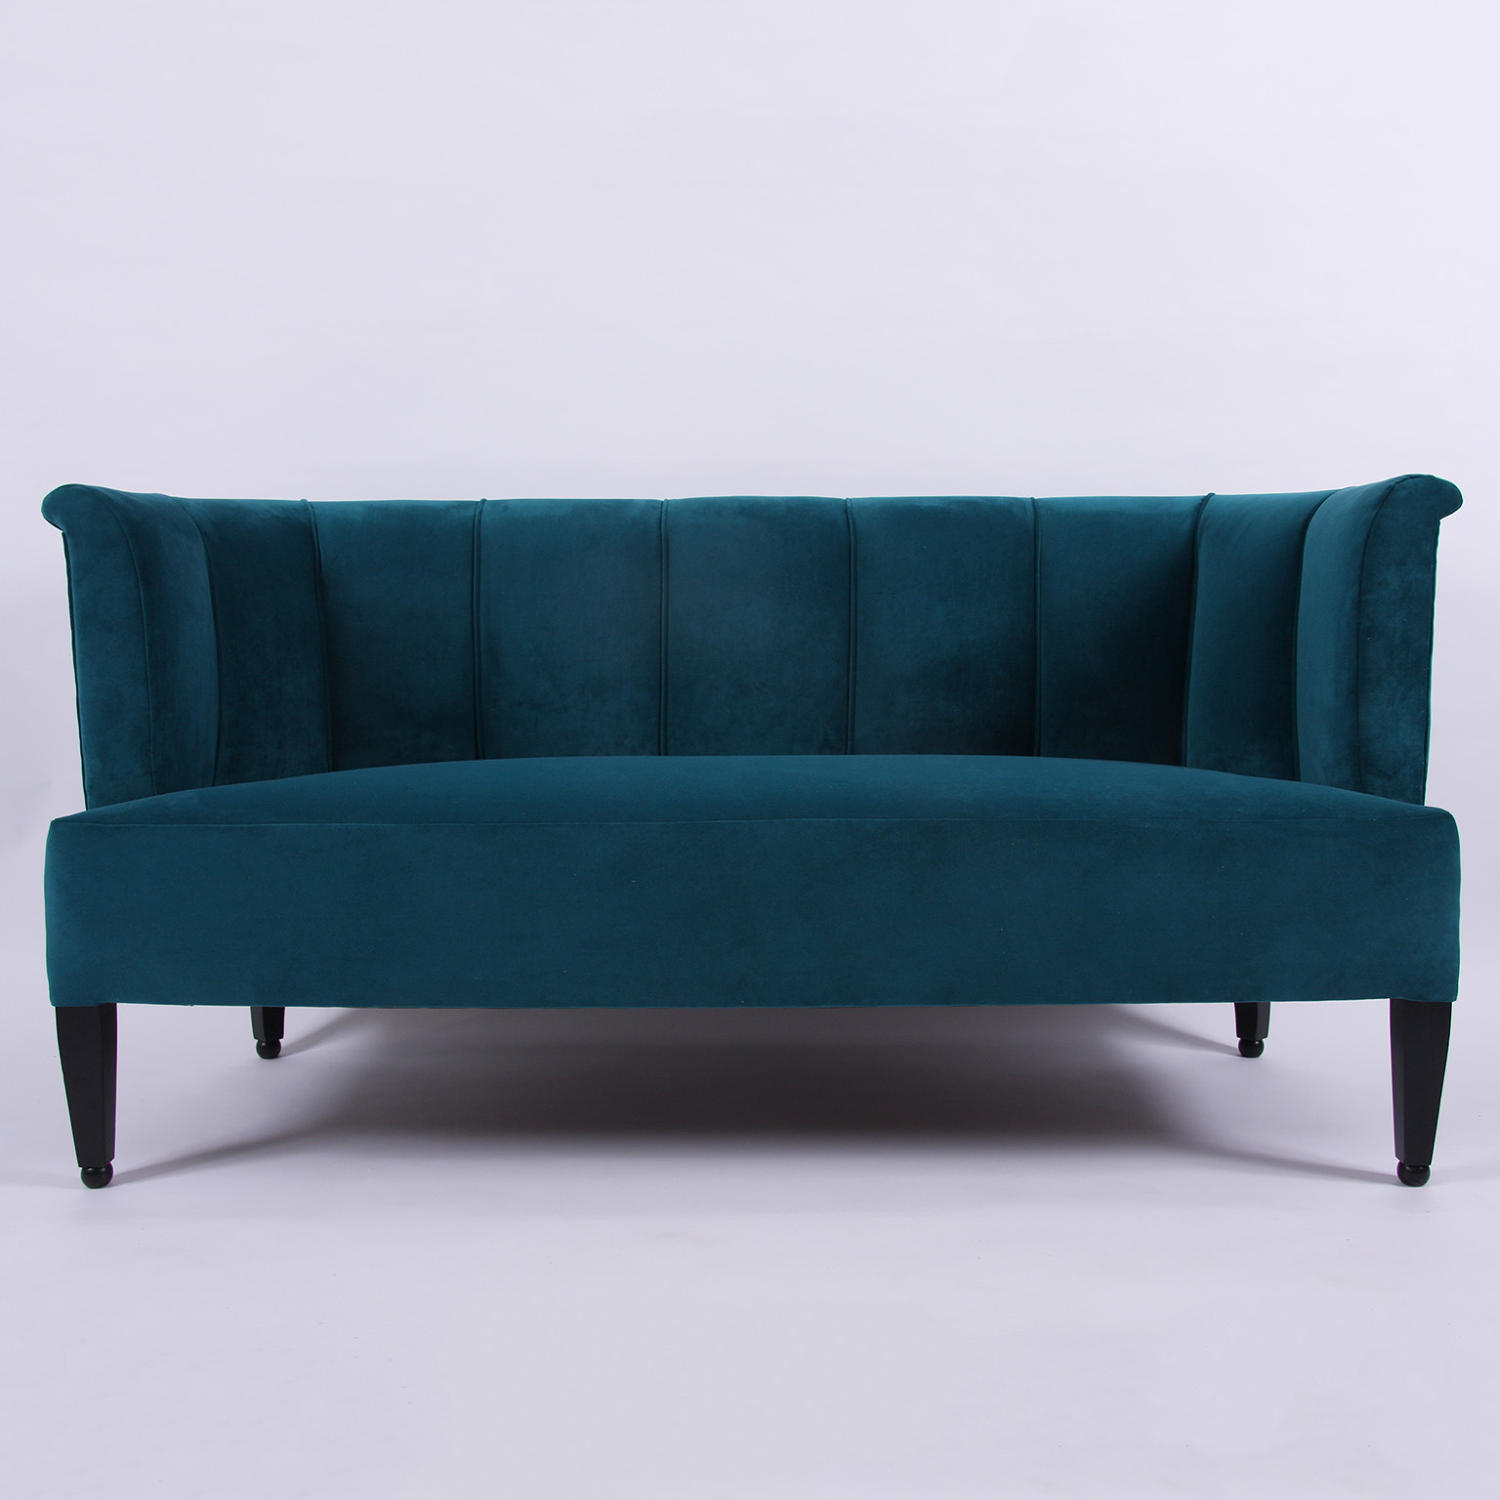 Alleege Sofa By Josef Hoffmann Picture 4